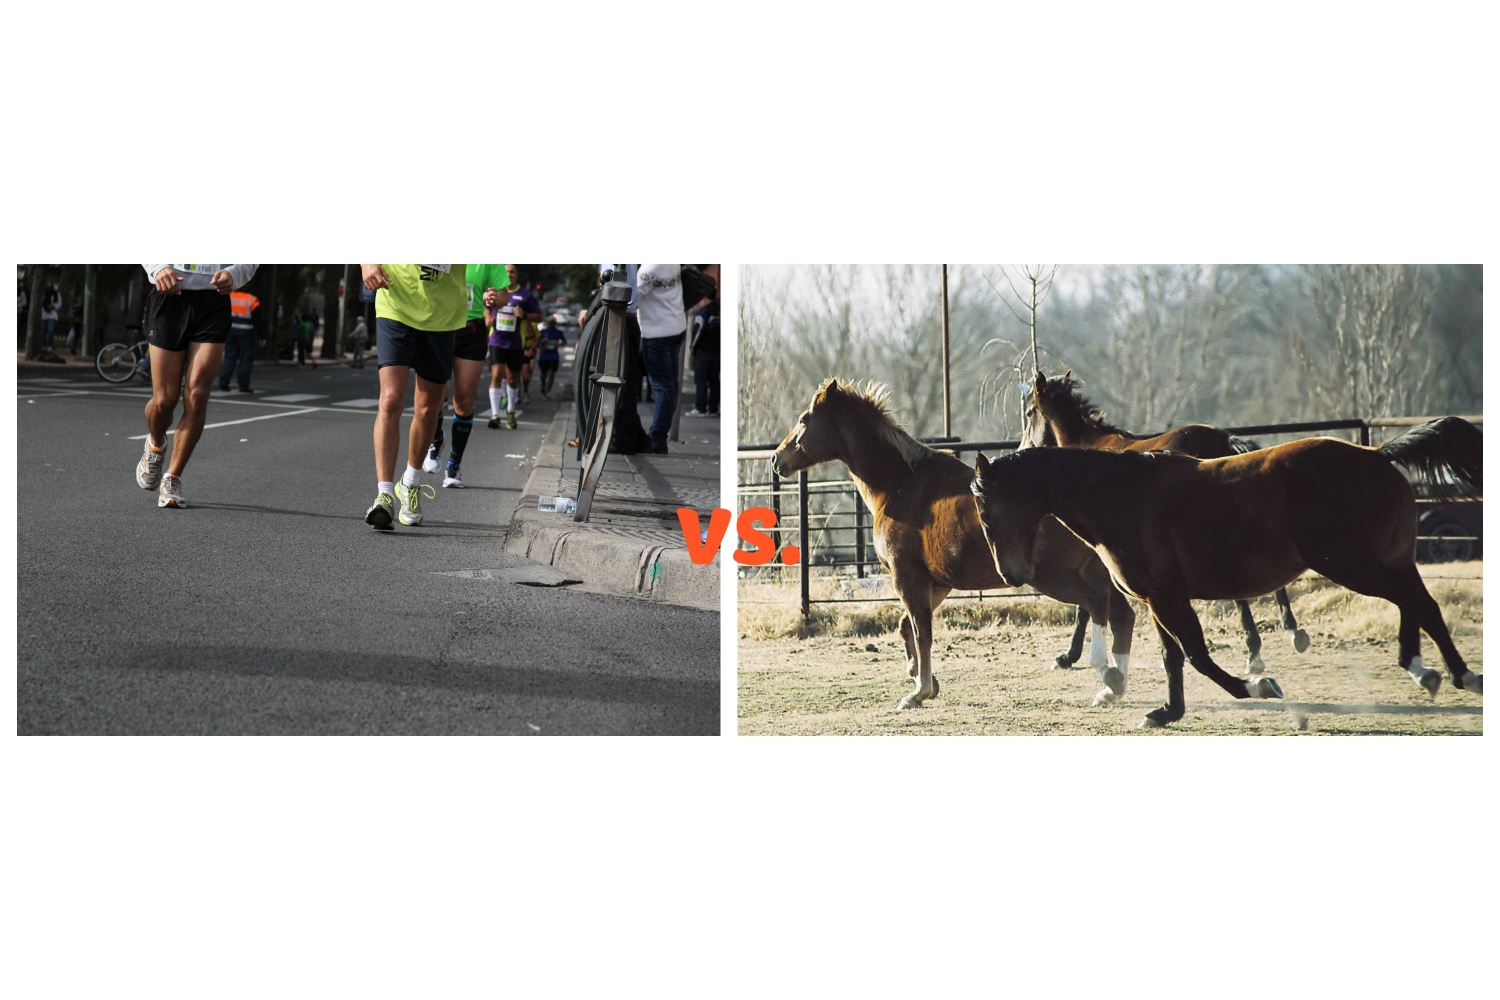 Who Runs Faster, a Person or a Horse?